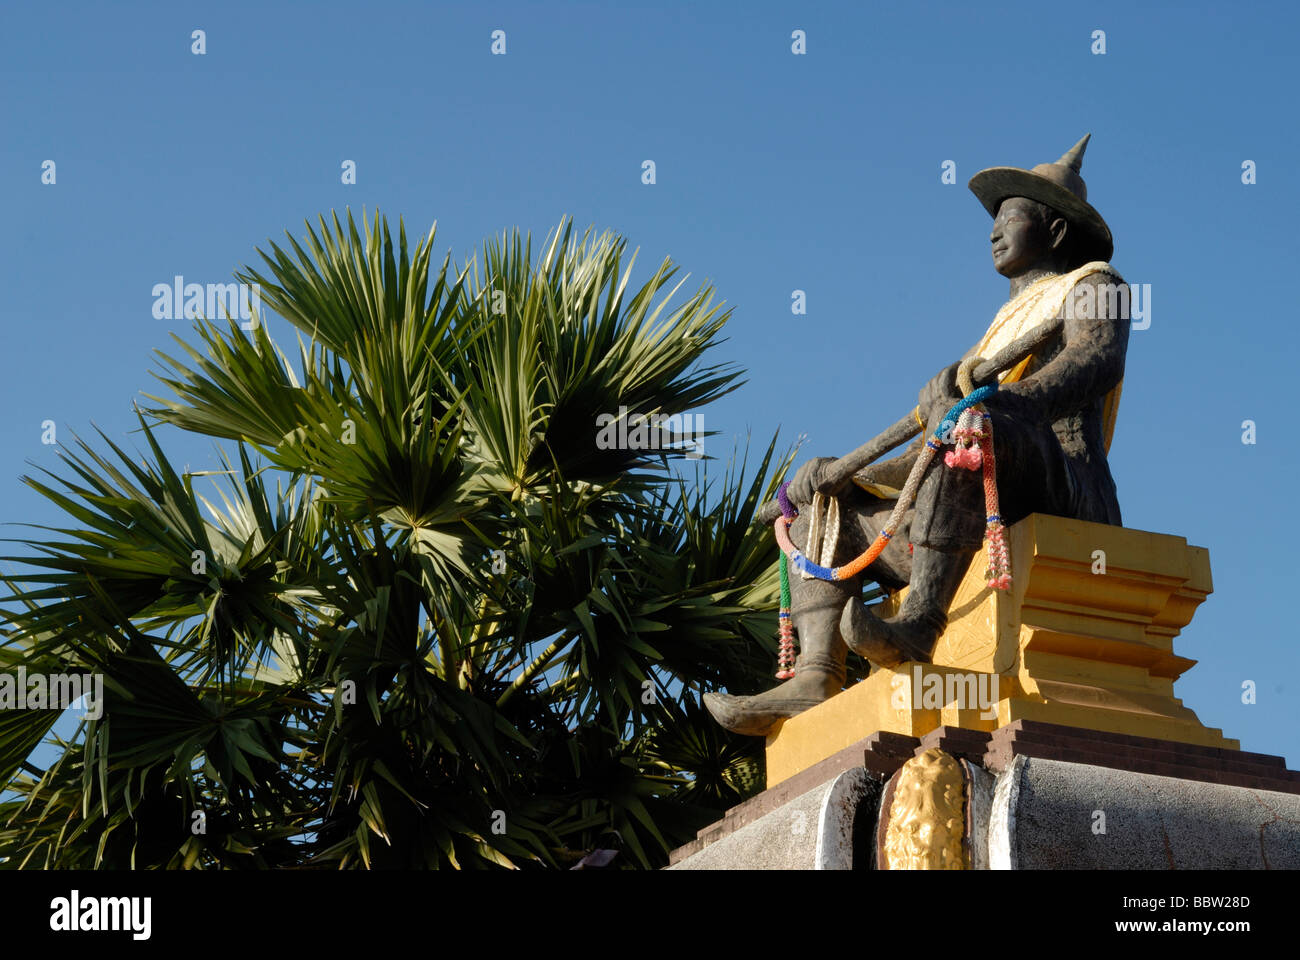 Statue of King Setthathirat, ruler from 1548-1571, at Pha That Luang, Great Stupa, Vientiane, Laos, Asia - Stock Image